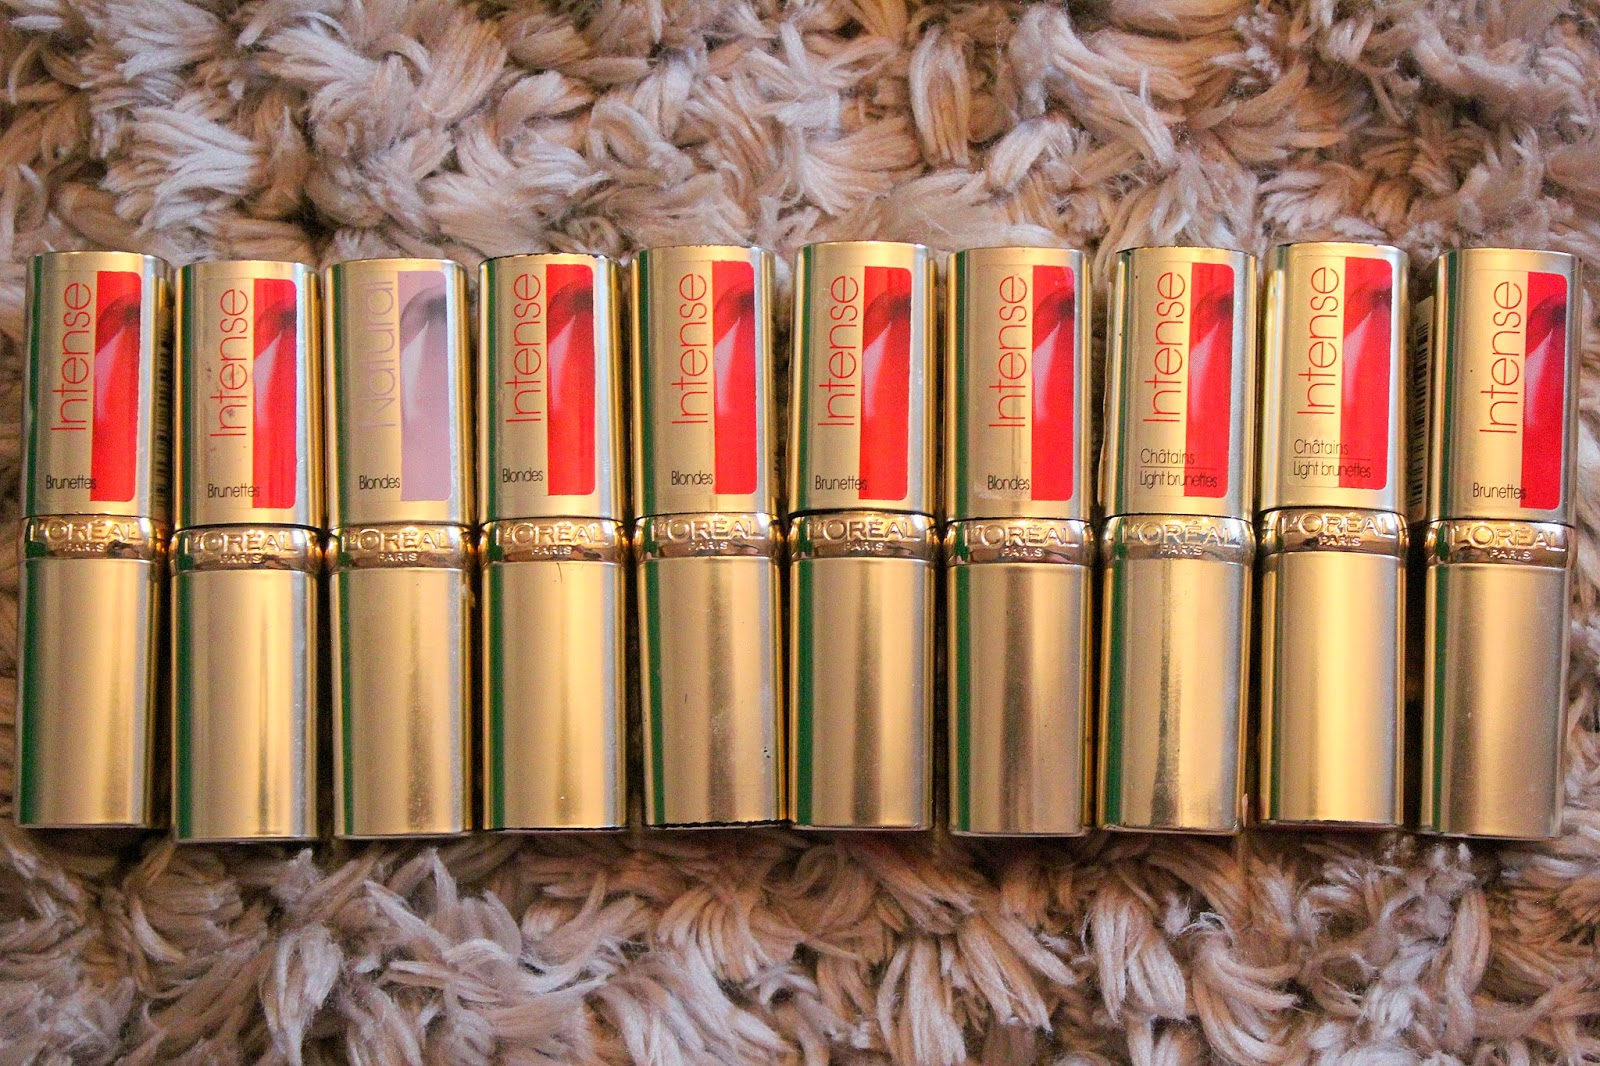 Testbericht | Review: L'oreal Color Riche Intense Lippenstifte